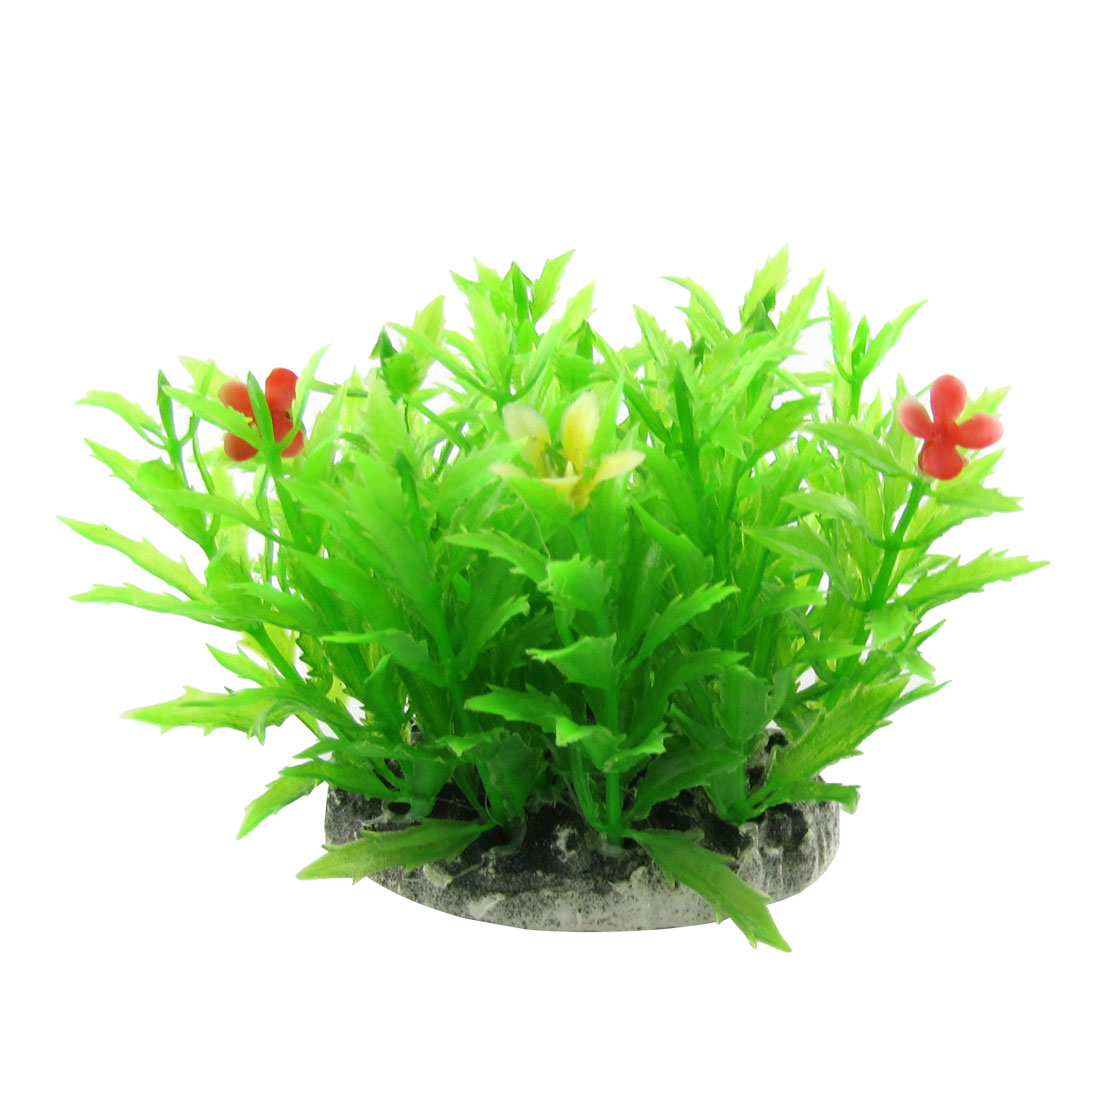 Floral Detailing Green Grass Ornament 3 Inch for Aquarium